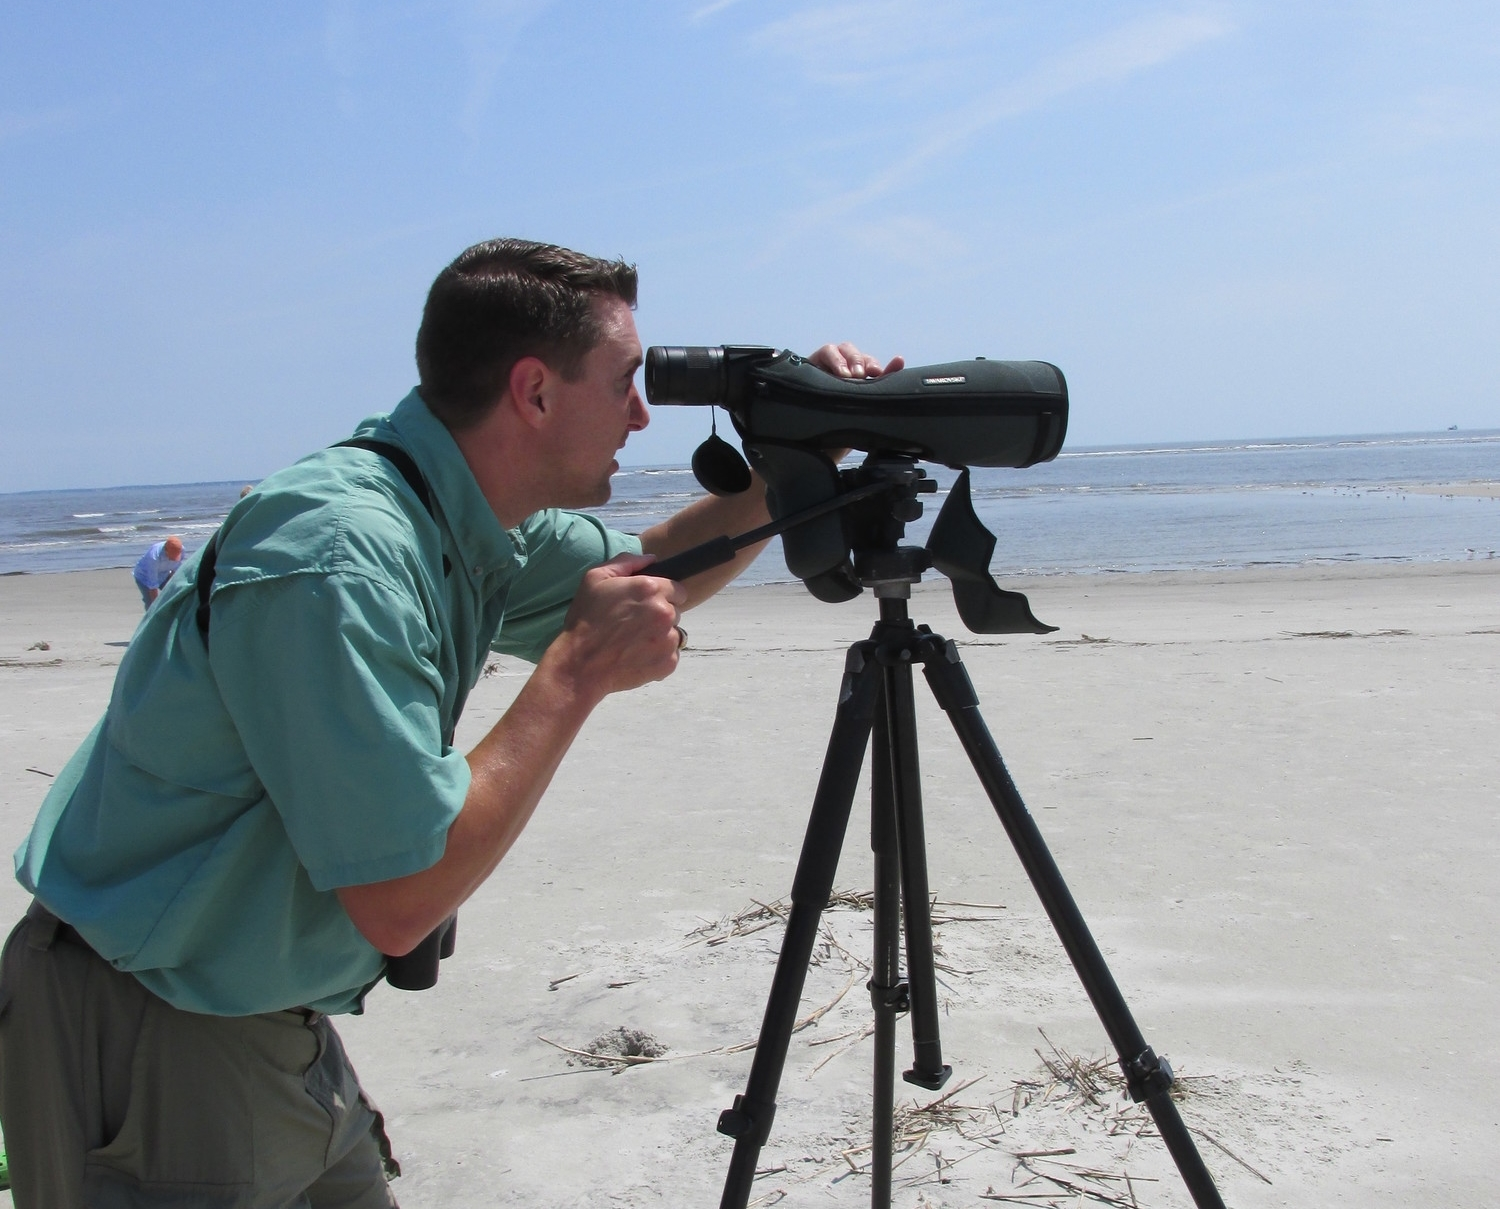 Teaching a SCWF Palmetto Pro Birder class at Harbor Island, SC on barrier island ecology, with a focus on shorebirds and horseshoe crabs.